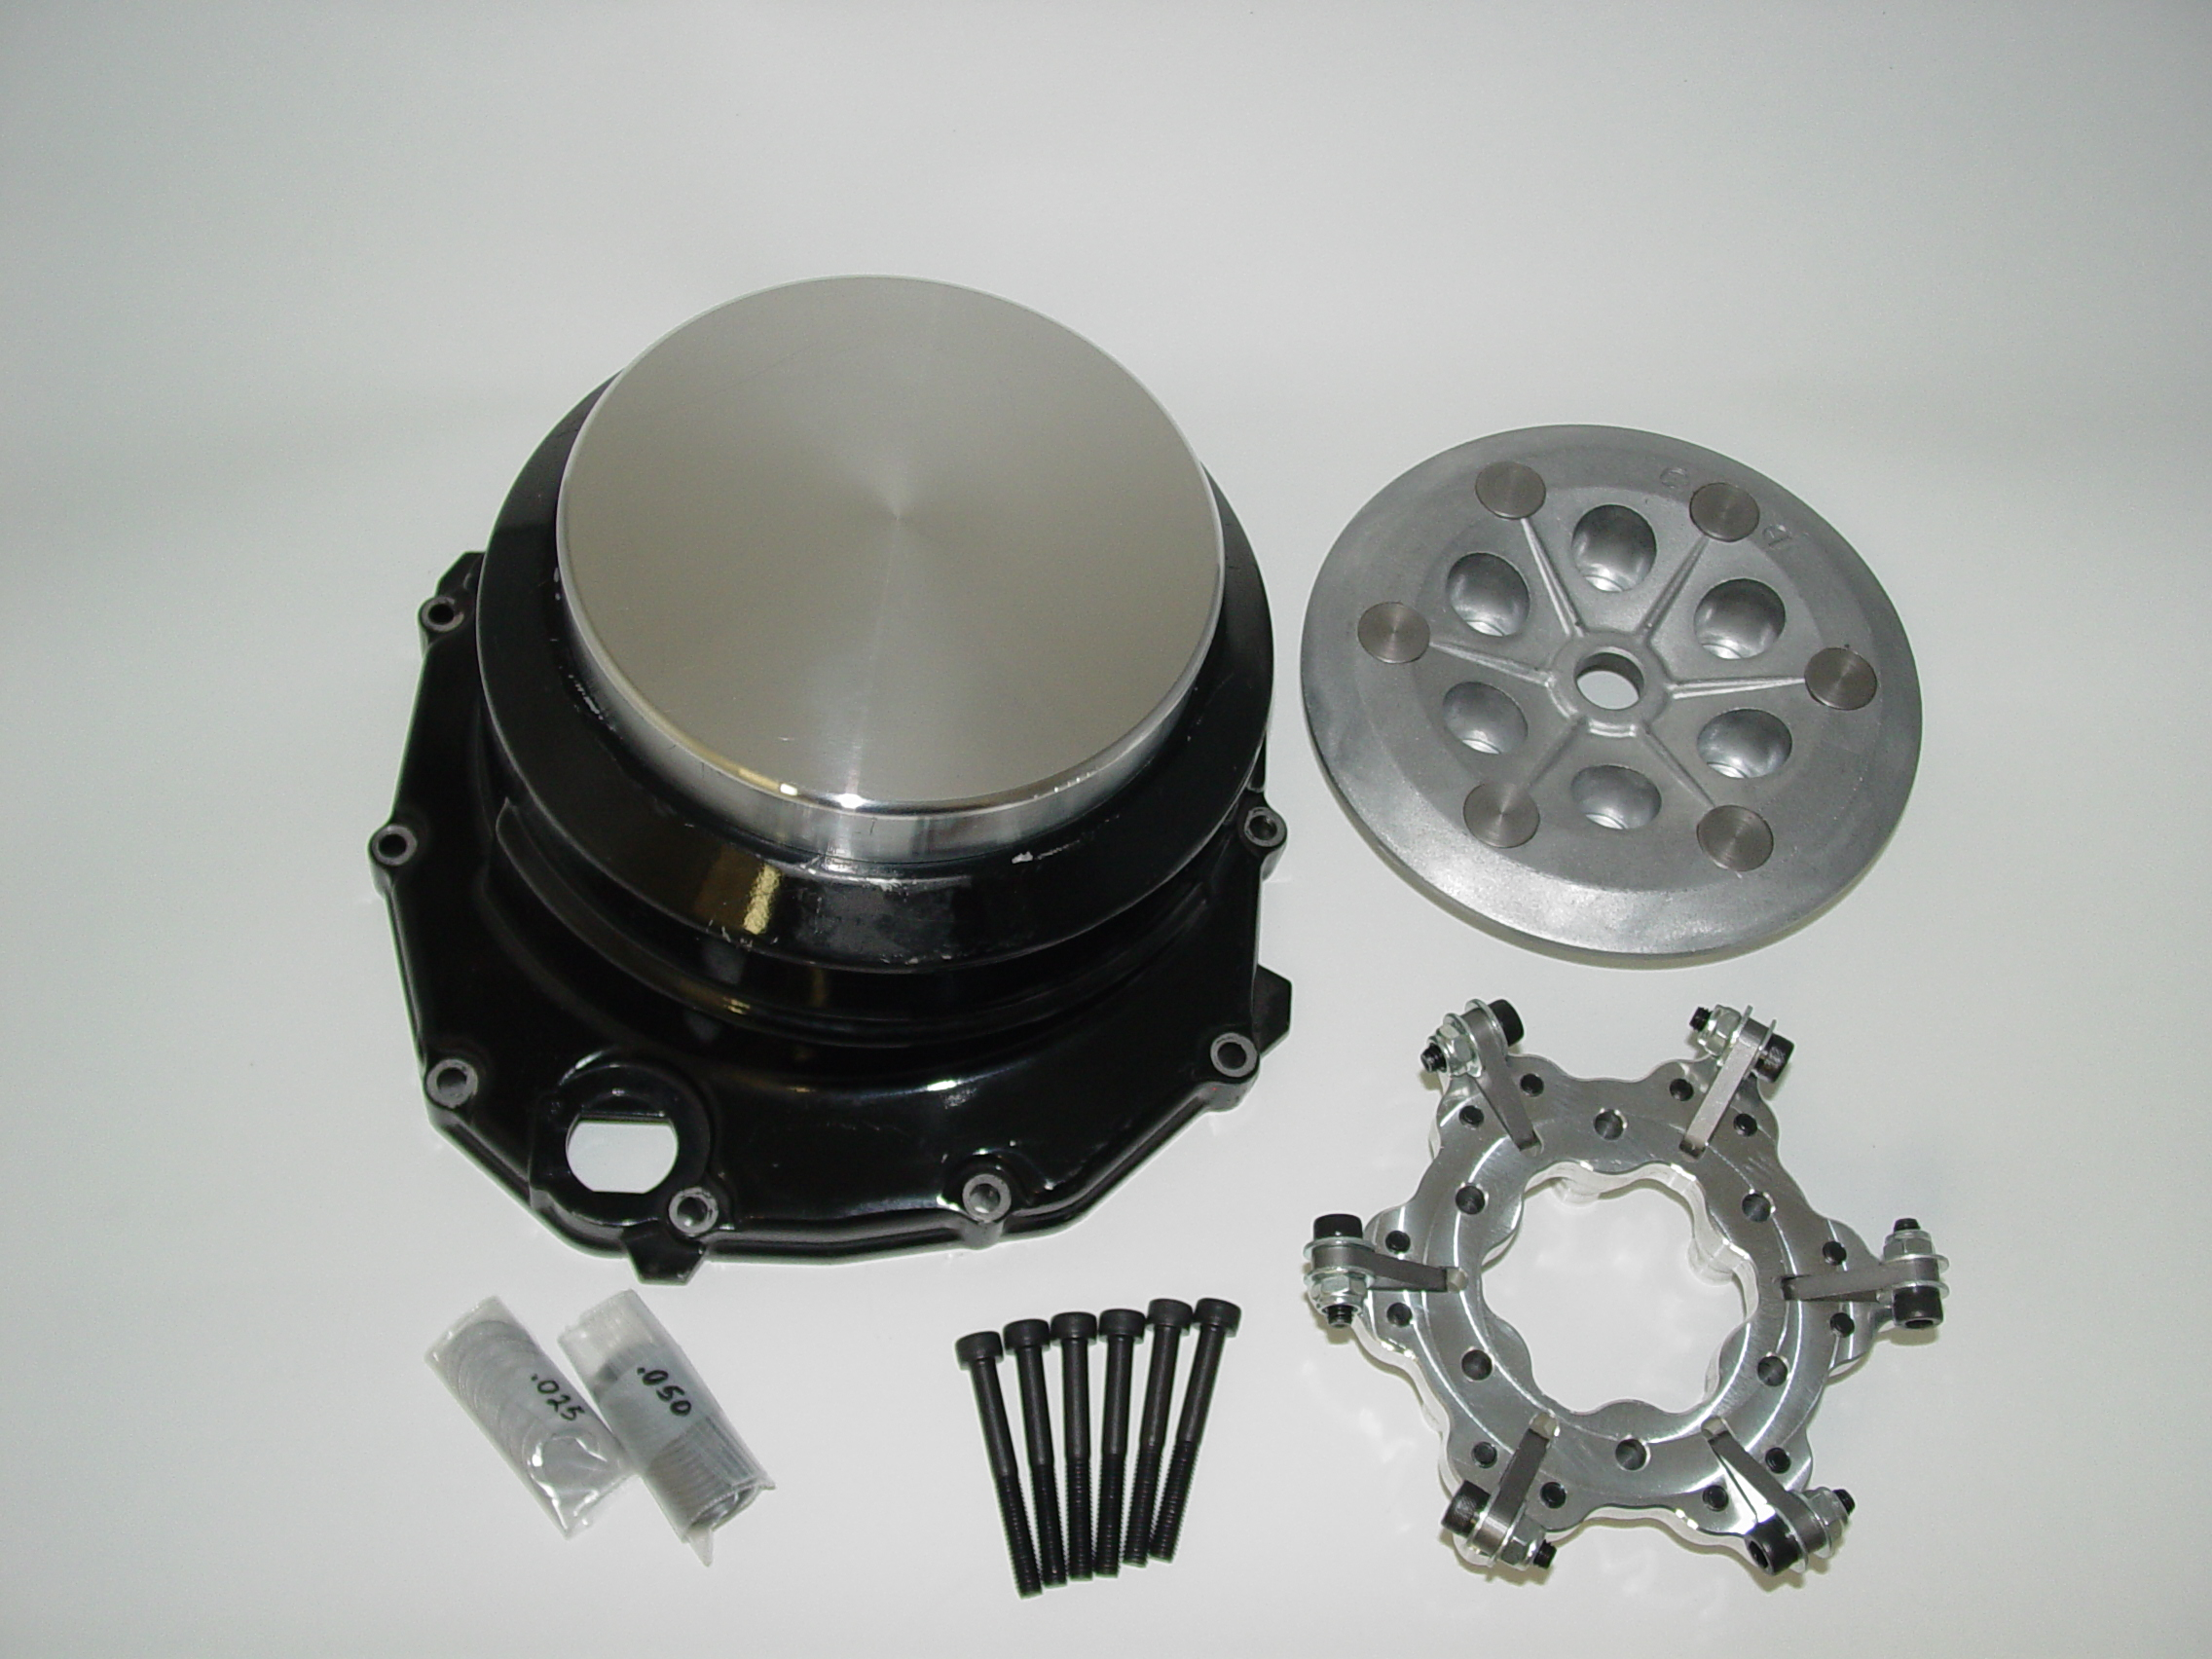 SUZ (GSX1300R HAYABUSA) 2 STAGE LOCK UP CLUTCH